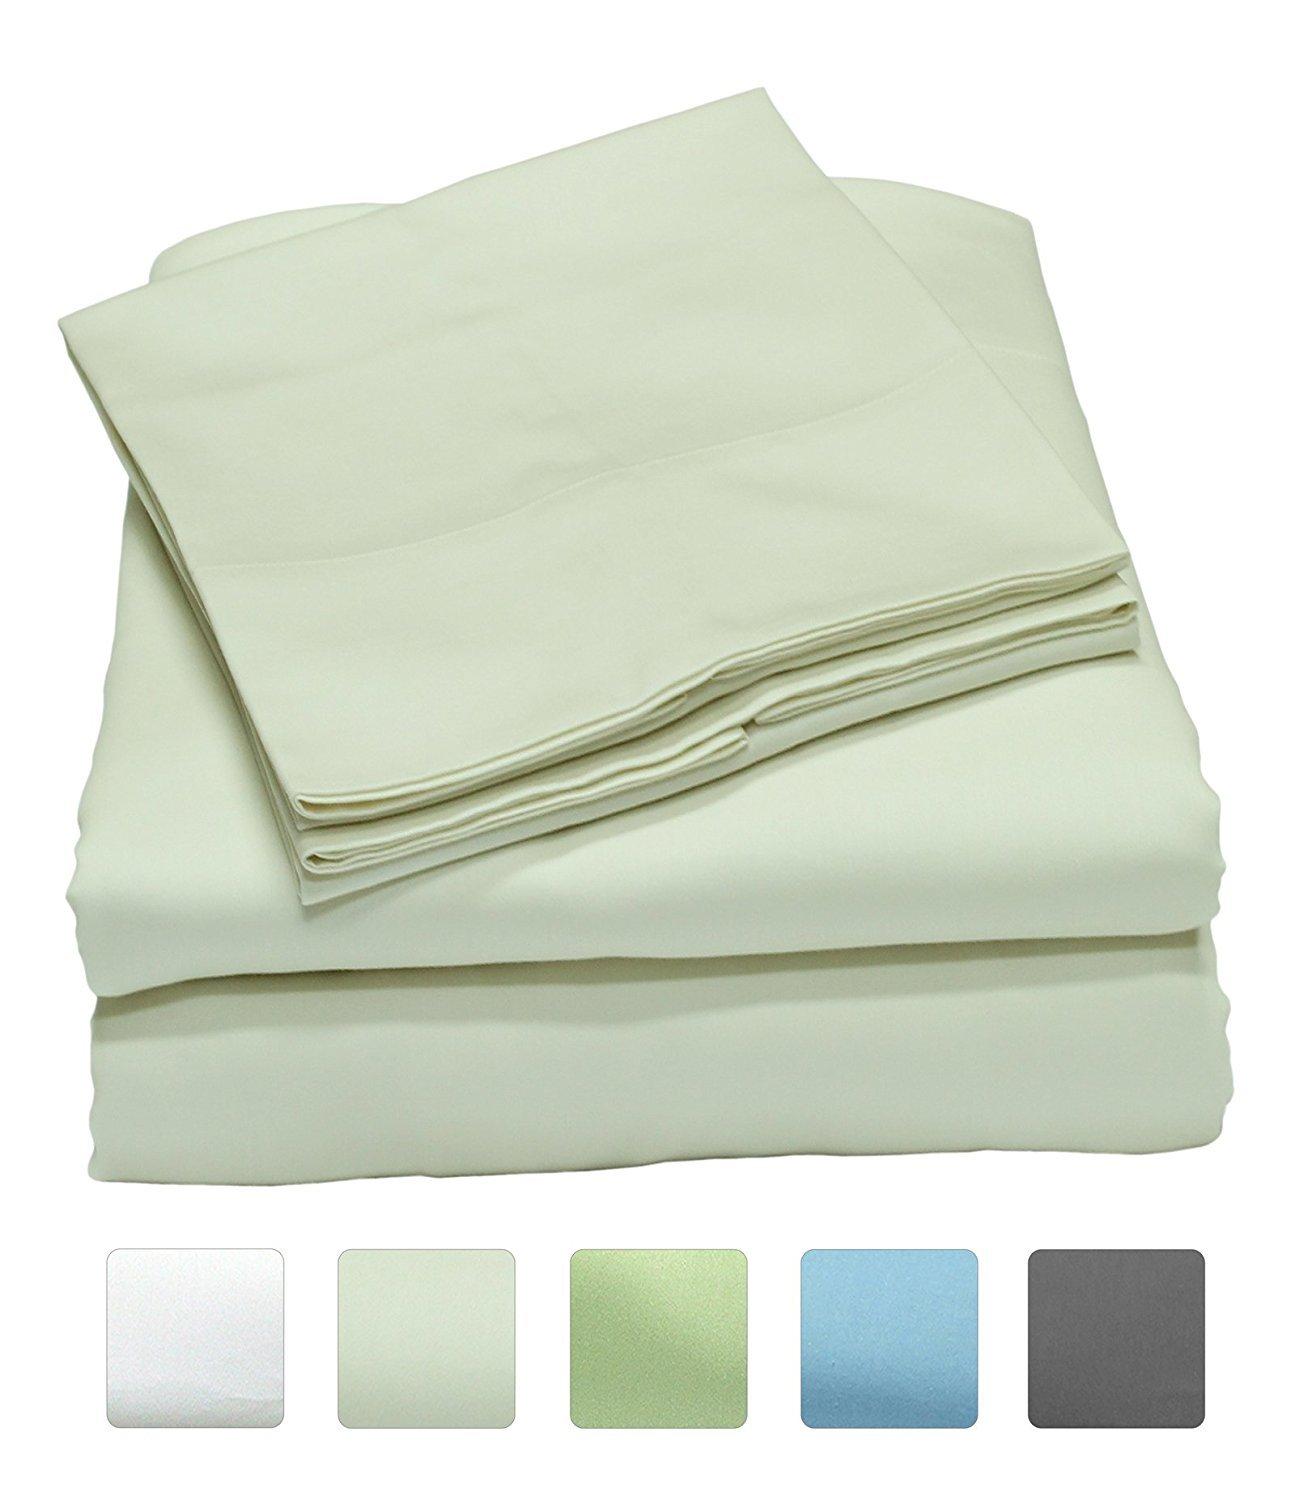 Cotton Sheets On Sale 300 Thread Count 100 Cotton Sheet Set On Sale Just 28 49